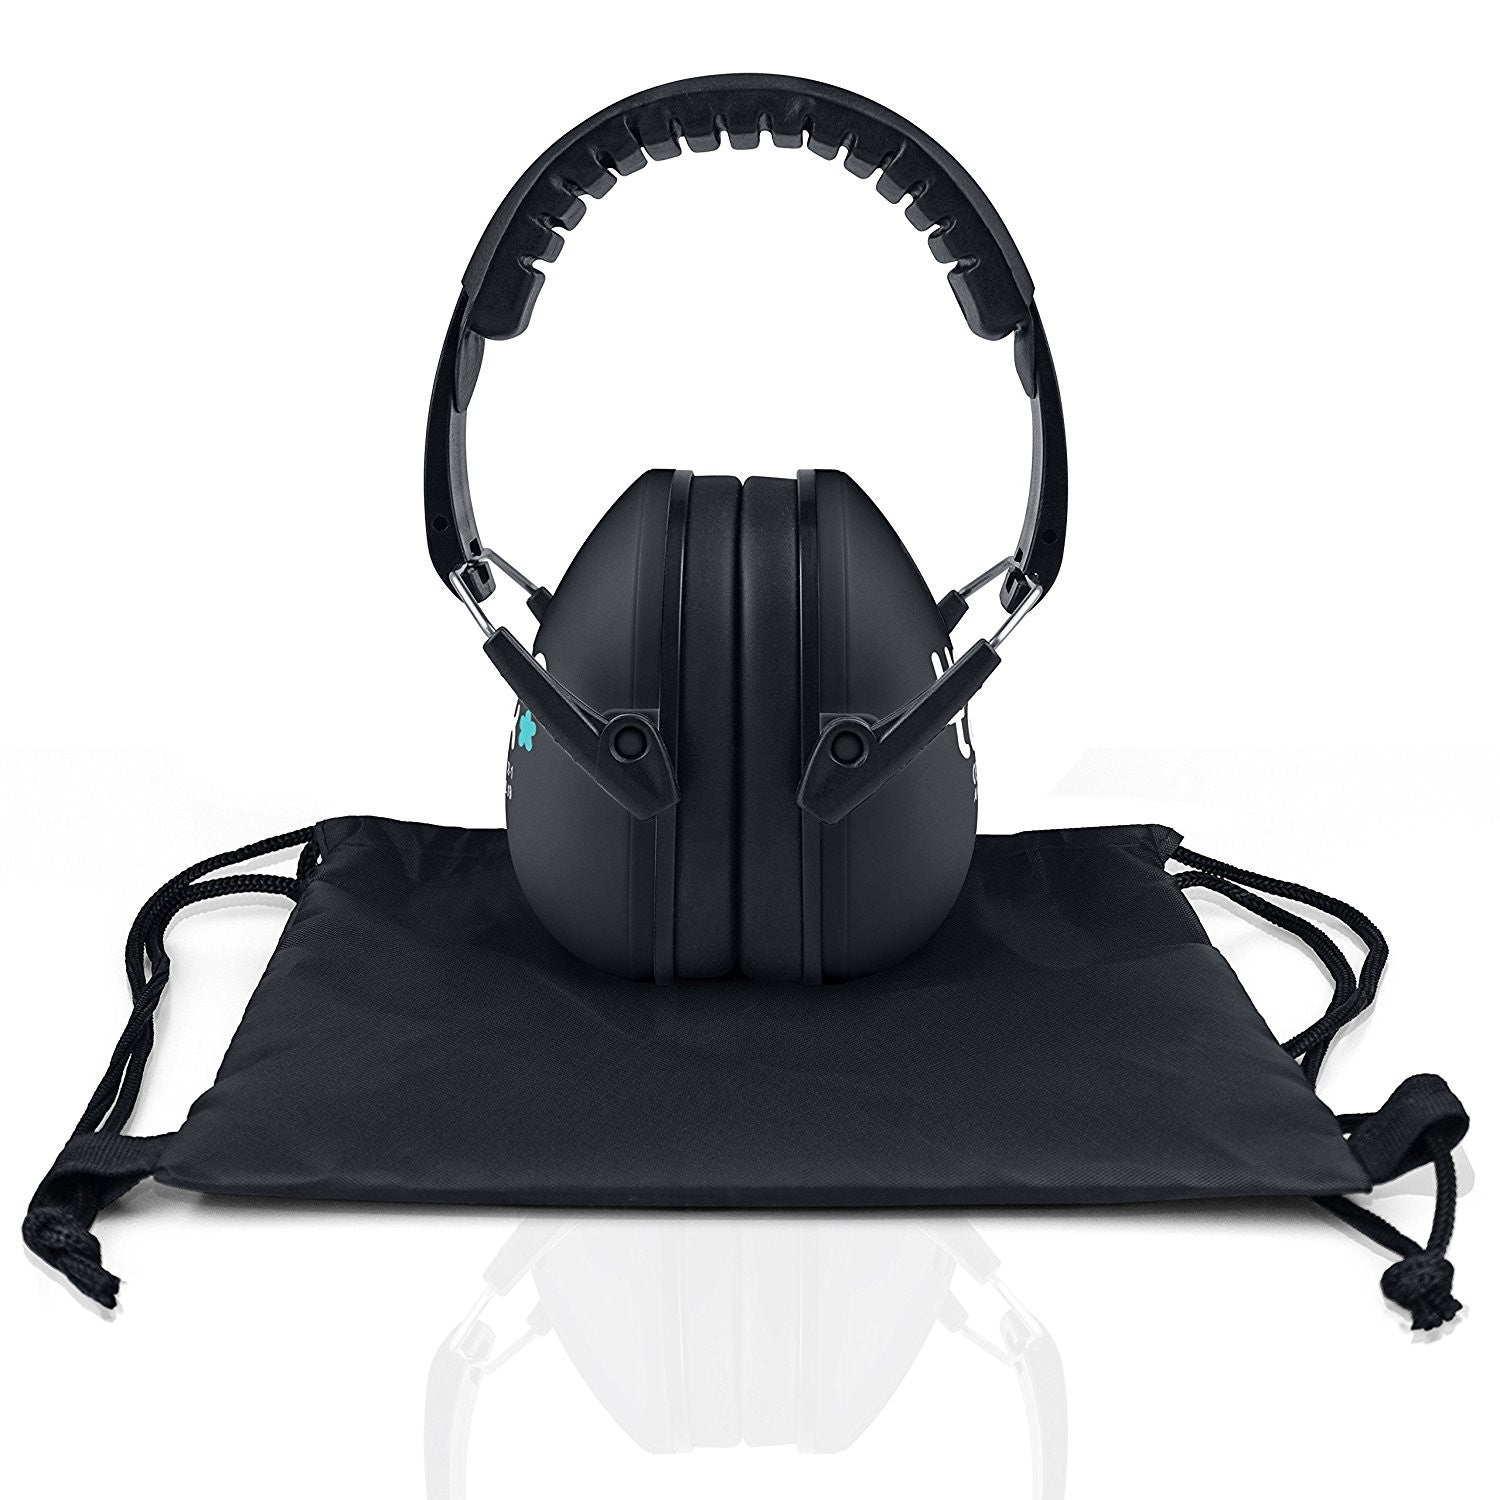 Licorice Black Senna Earmuffs Hearing Protection with Travel Bag